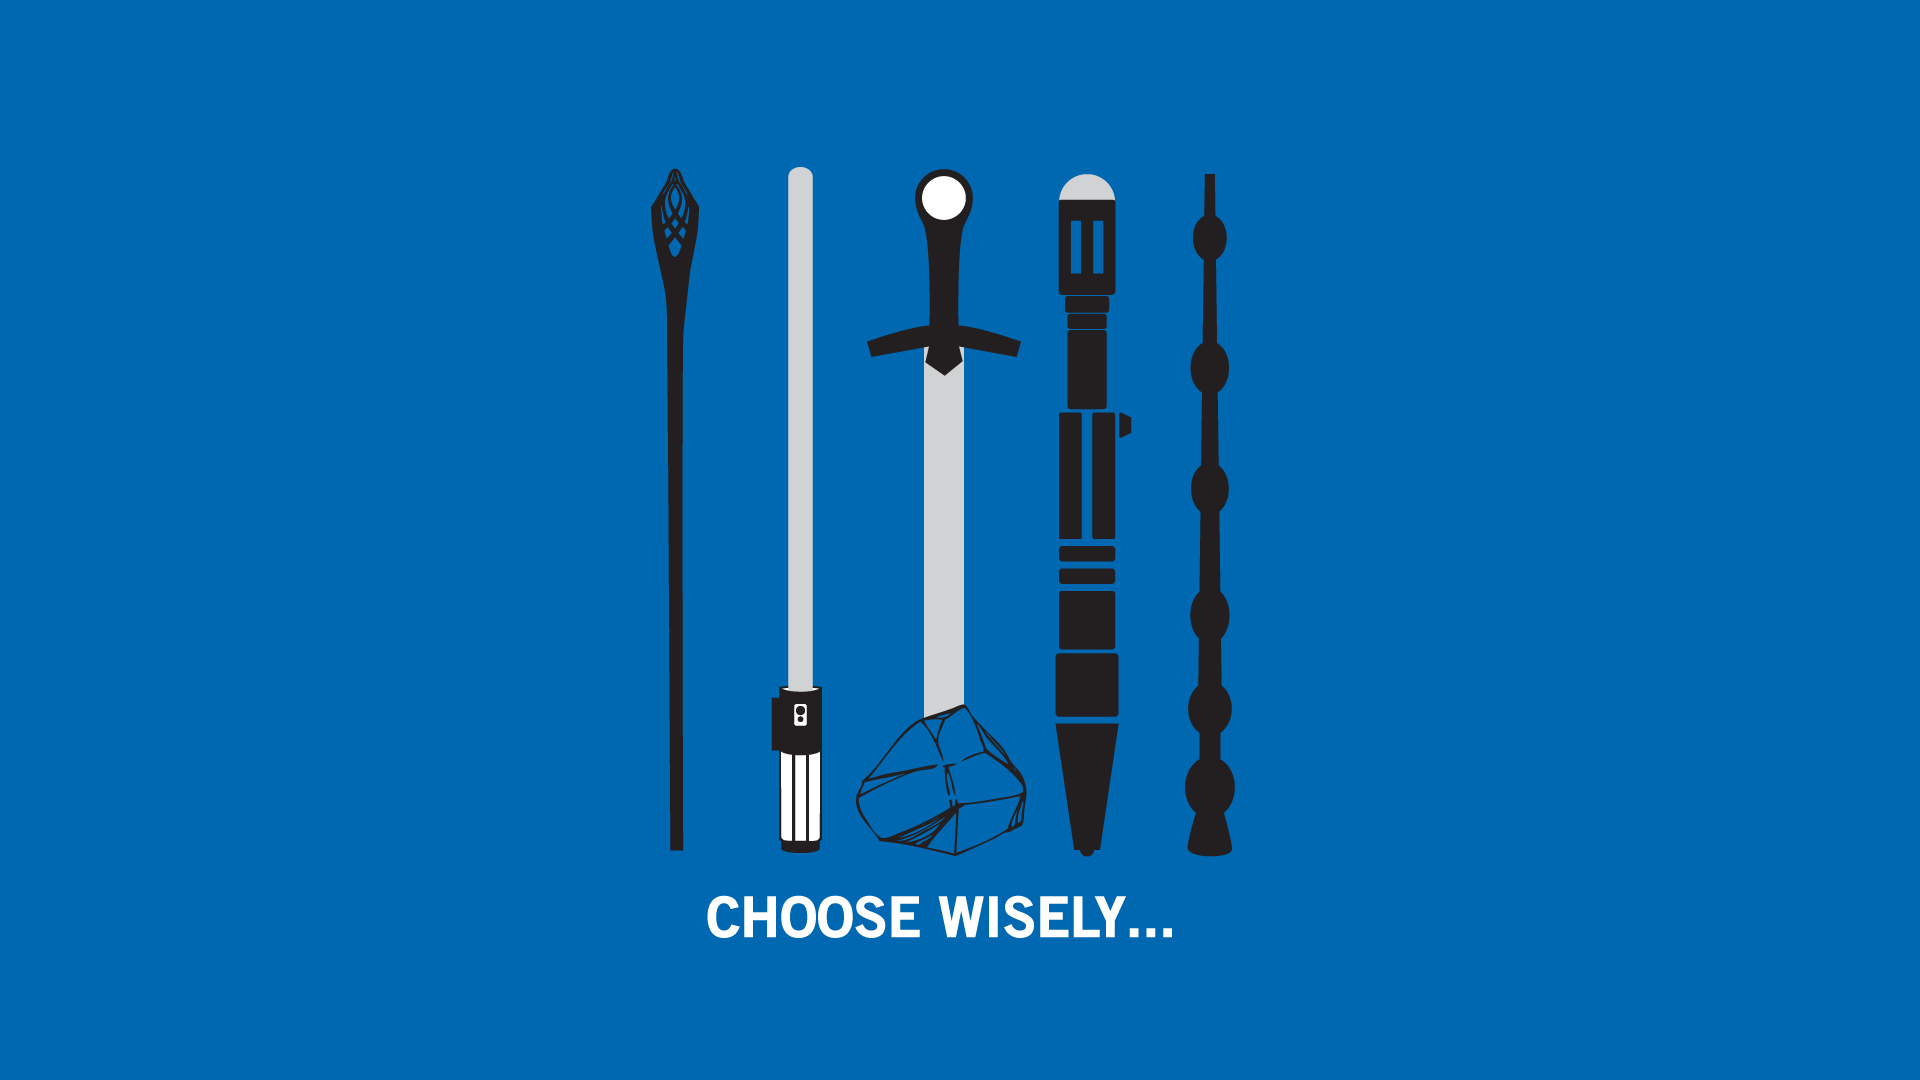 The Lord Of The Rings Star Wars Excalibur Harry Potter Doctor